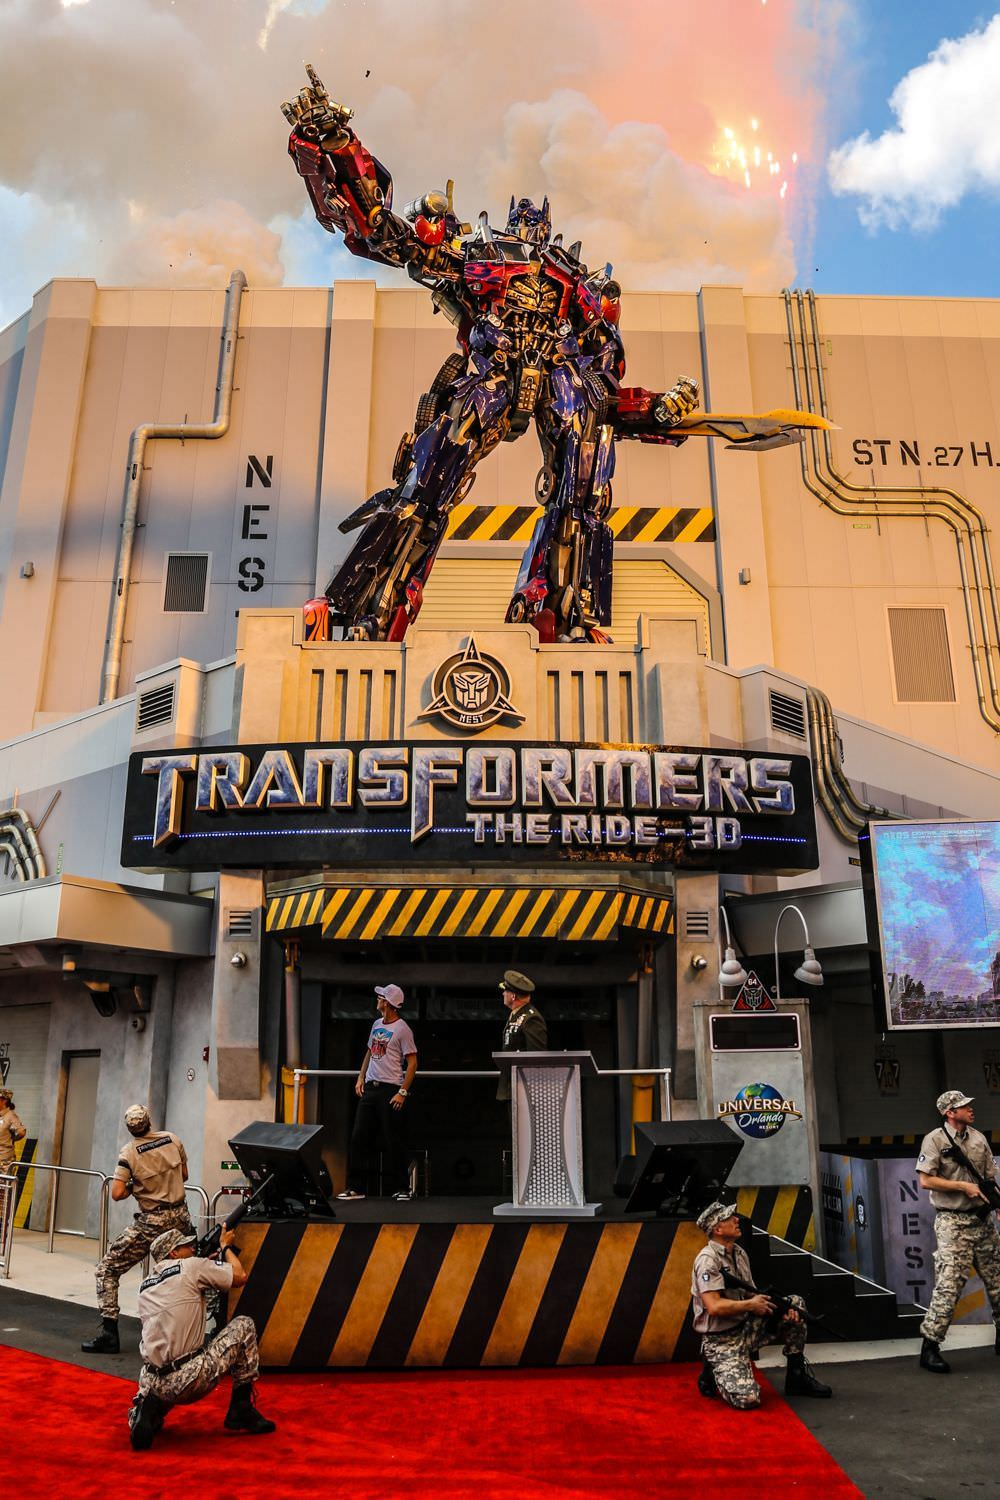 Universal Orlando Resort Transformers The Ride 3d